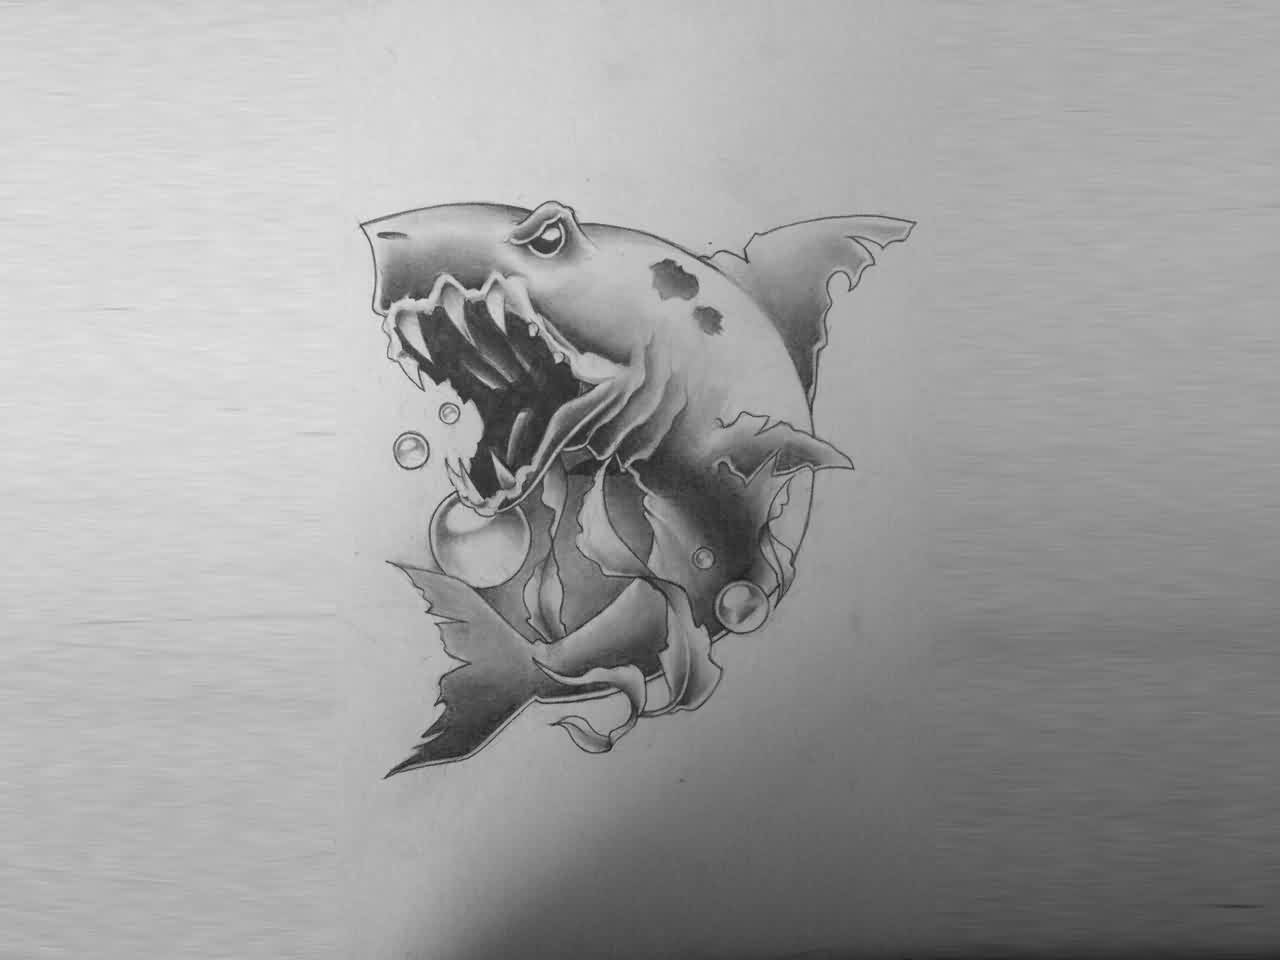 Bite Of The Shark Tattoo Design